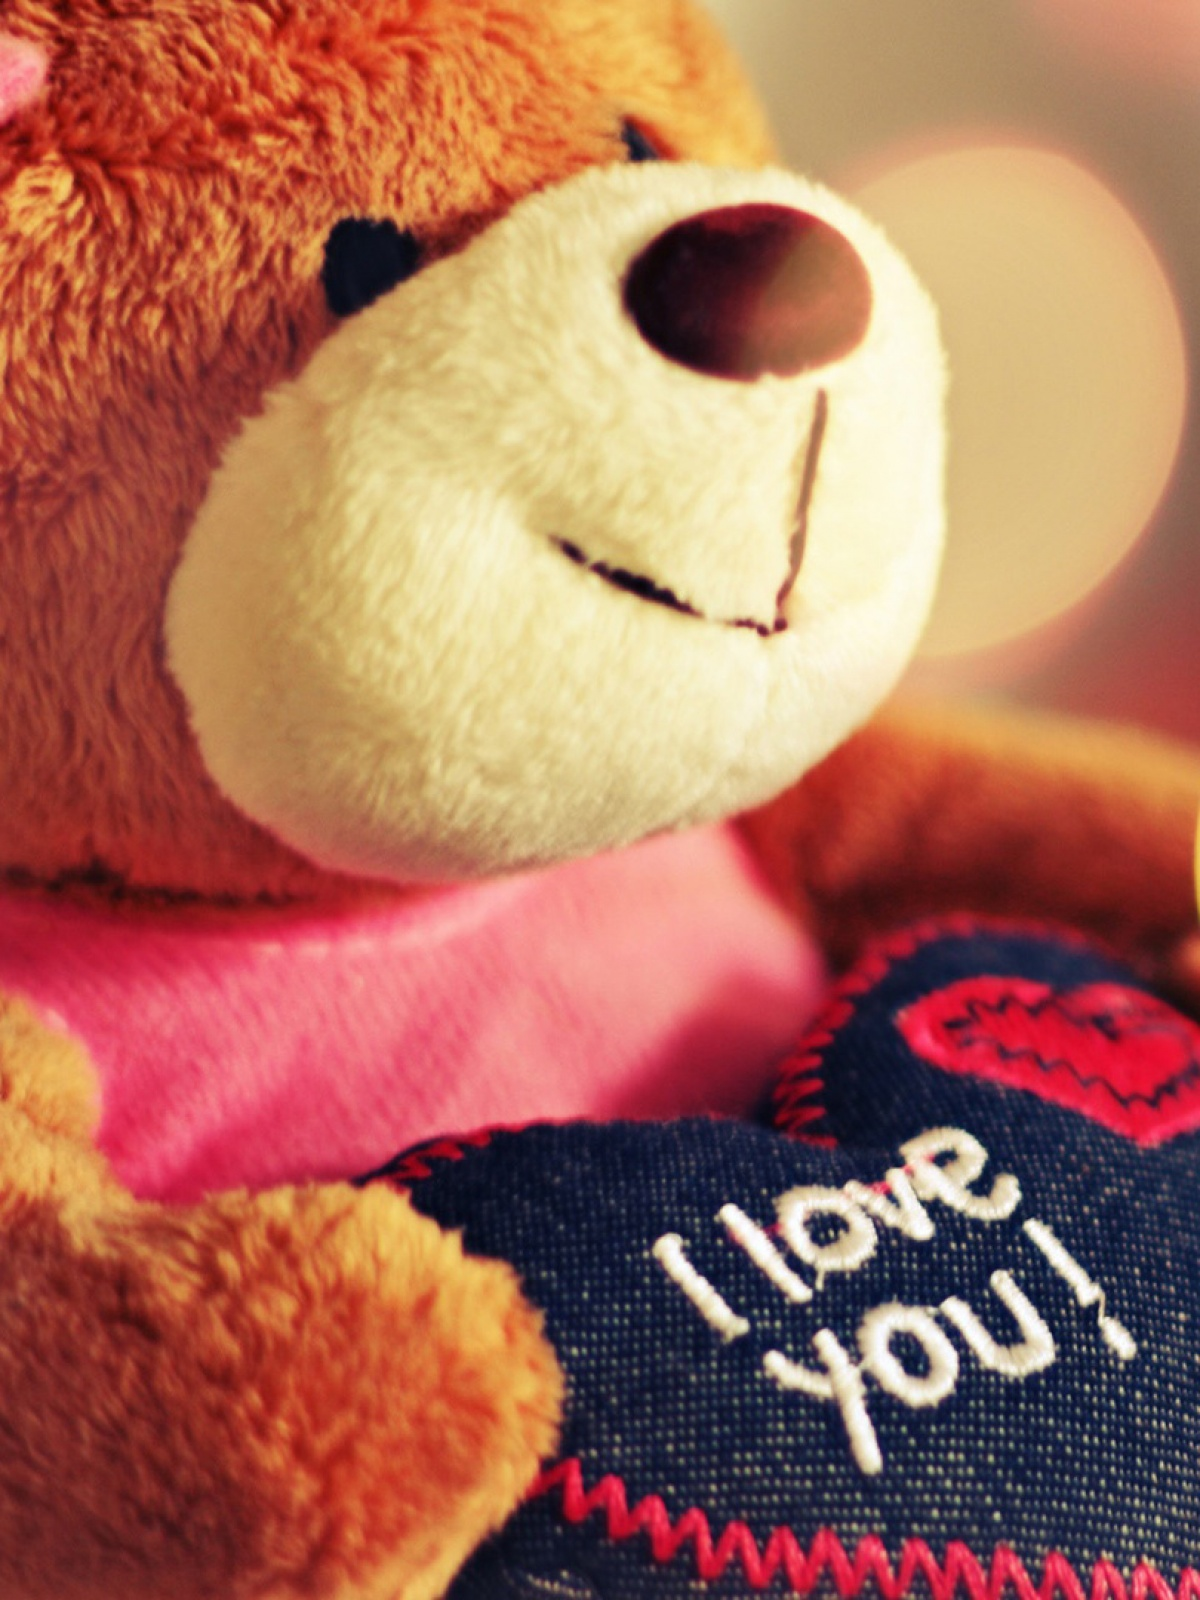 i love you teddy bear mobile wallpaper - mobiles wall